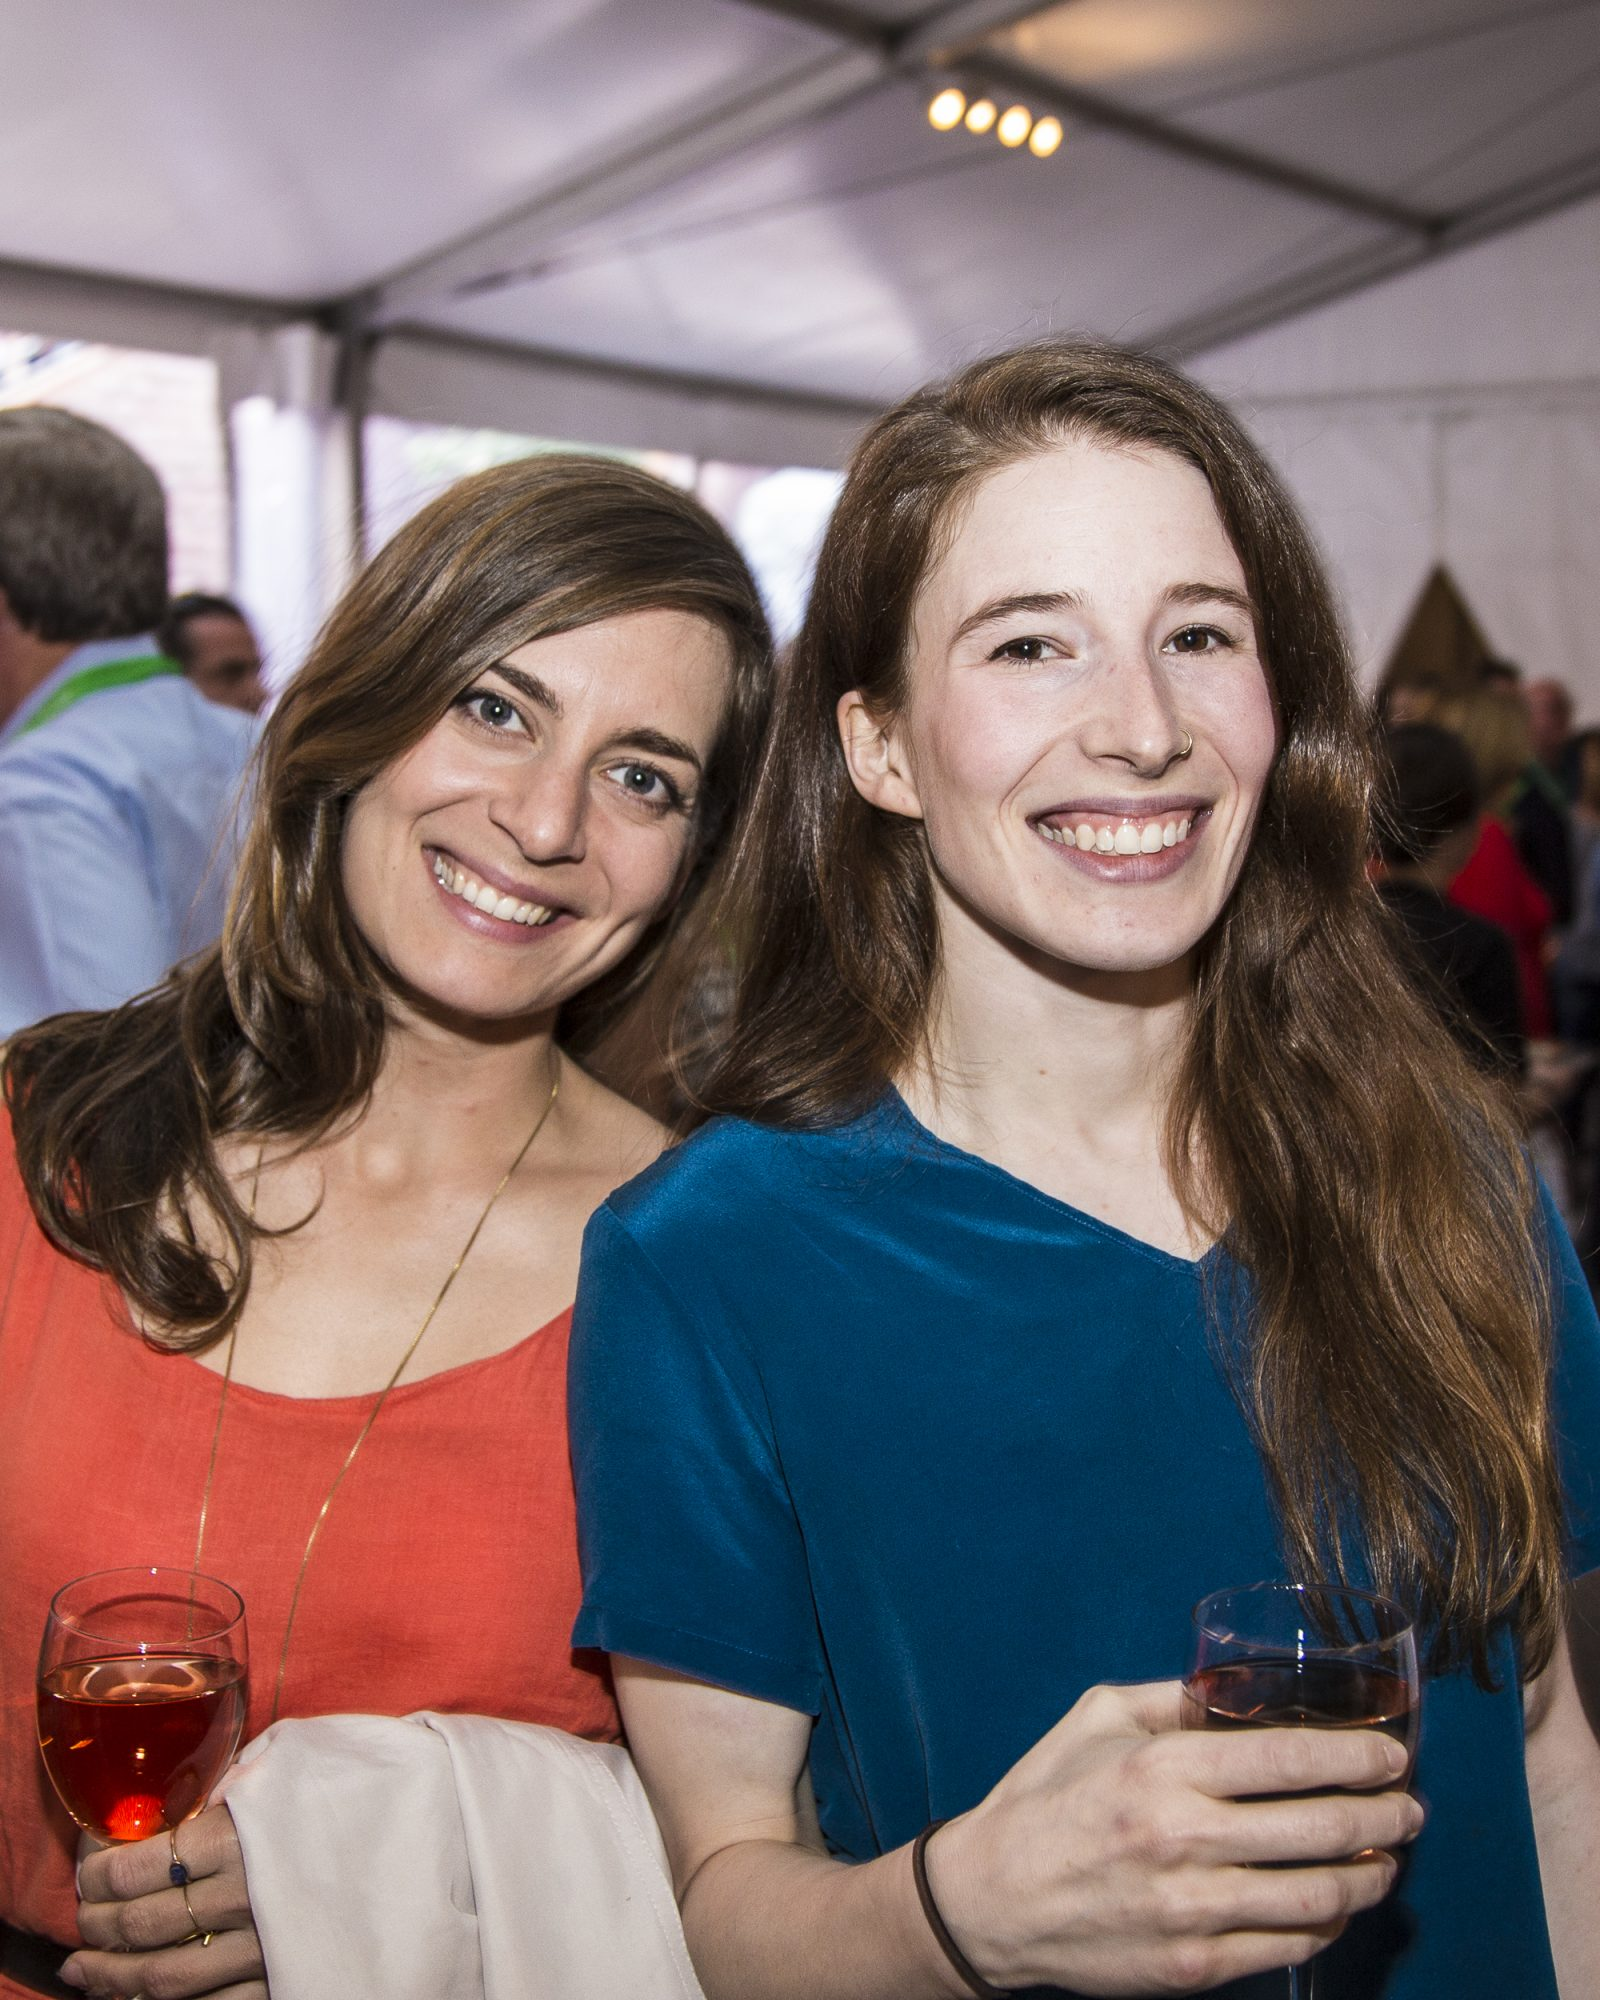 Best New Chefs 2017 Sara Kramer and Sarah Hymanson of Kismet attend the Food & Wine Classic in Aspen welcome reception.